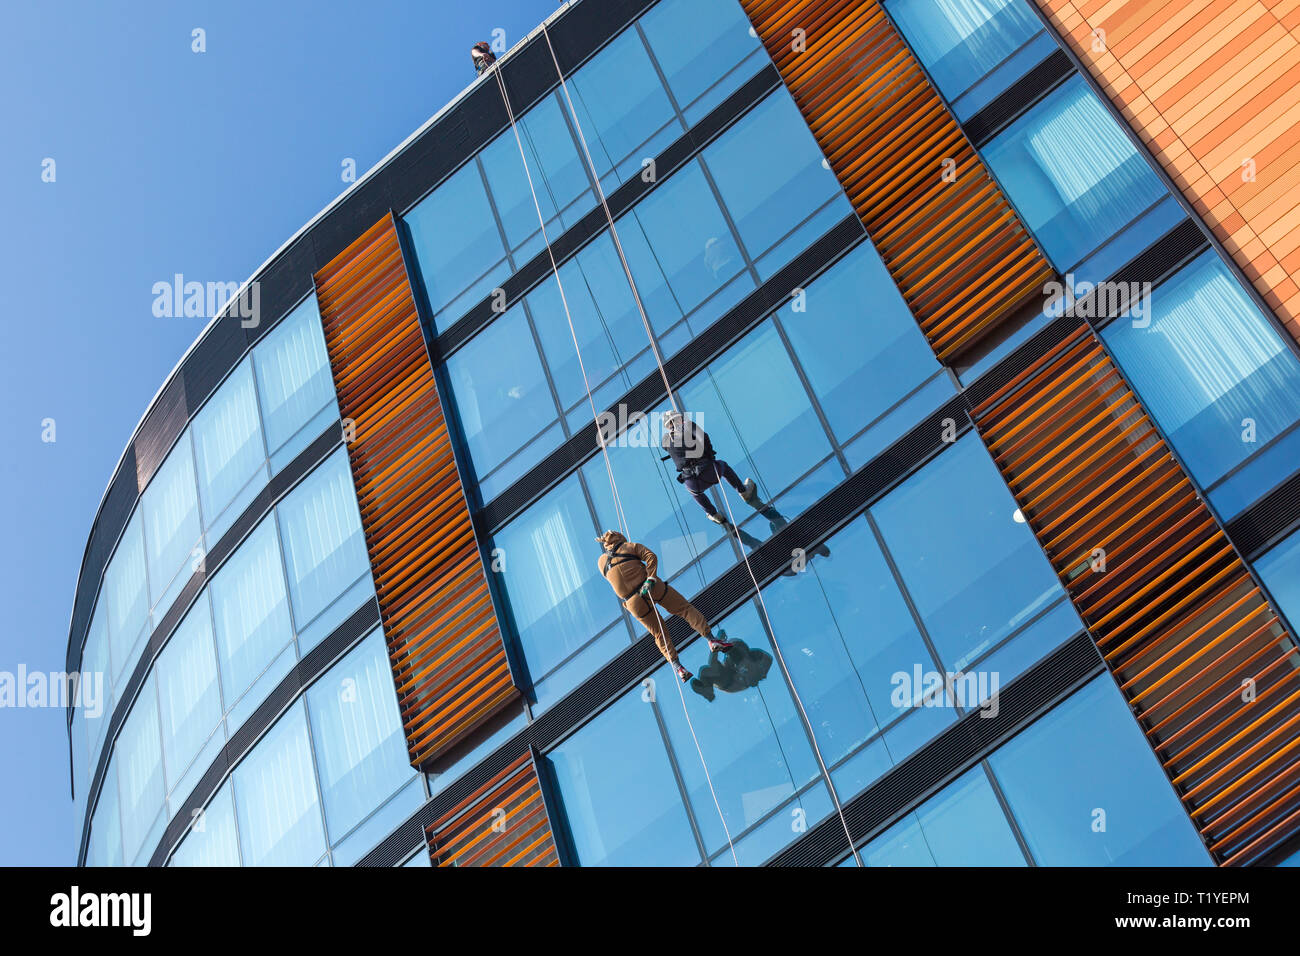 Bournemouth, Dorset, UK. 29th Mar, 2019. Staff working for telecommunications provider 4Com abseil down their new office building at One Lansdowne Plaza in Bournemouth which is 100ft high. They are raising funds for Hope Housing and Hope AOK Rucksack Appeal who provide support to homeless in Bournemouth. A lovely warm sunny day for the descent! Men abseil down. Credit: Carolyn Jenkins/Alamy Live News - Stock Image